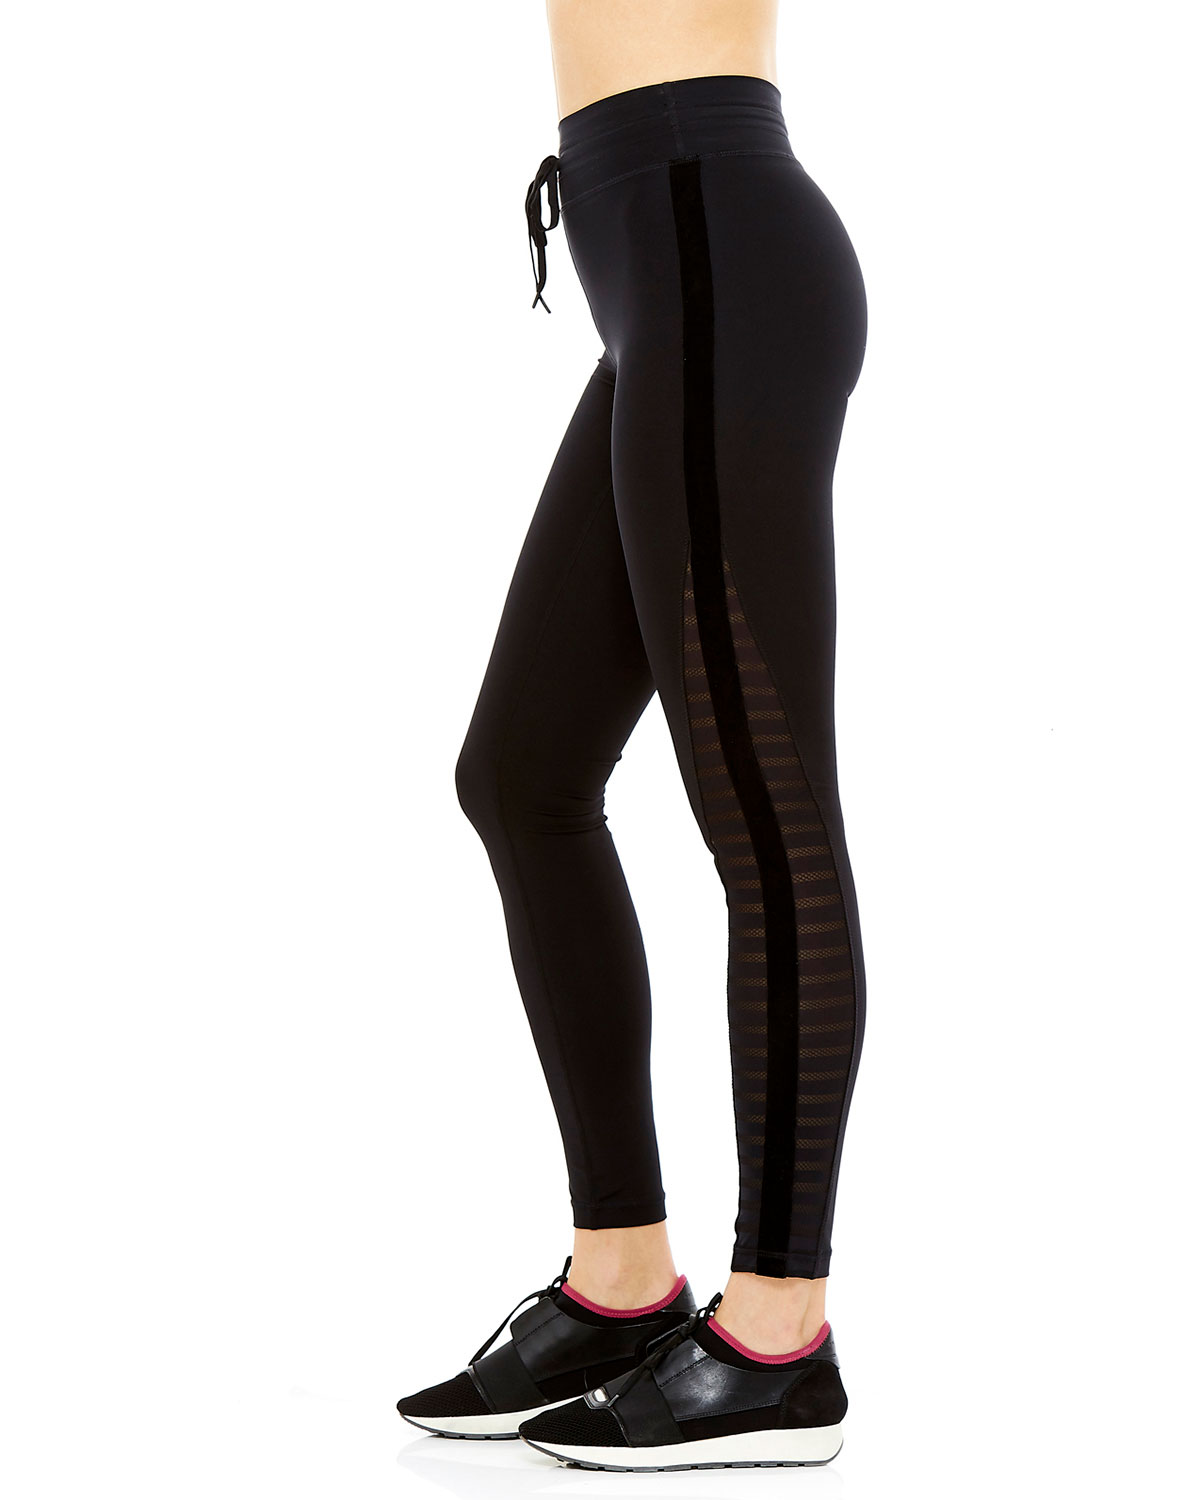 The Upside Velvet Stripe Yoga Leggings